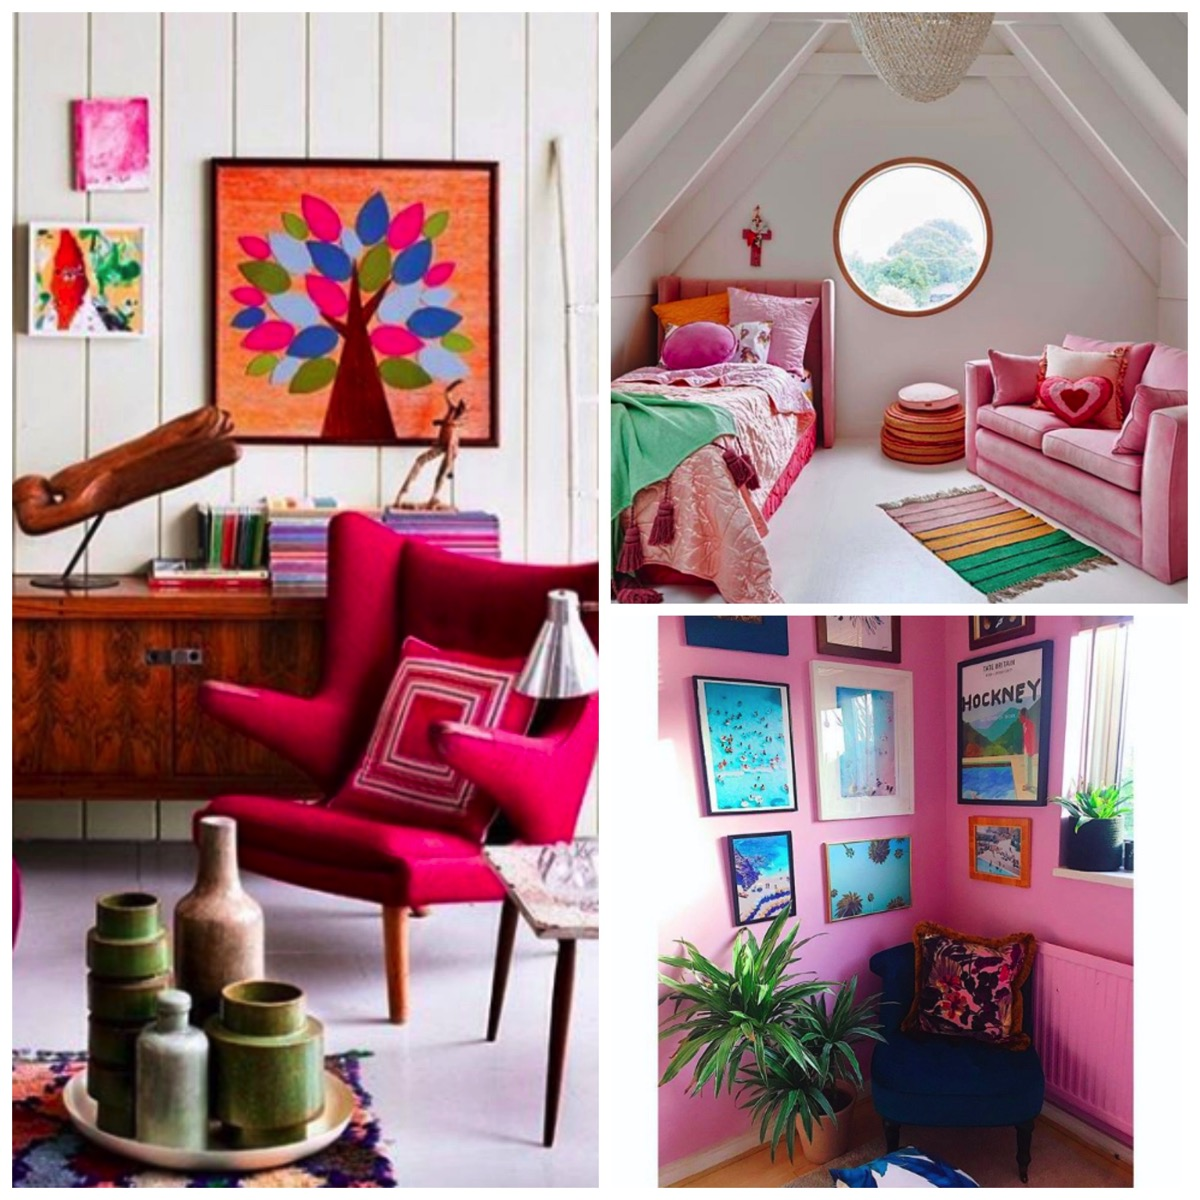 Pink chair and pink home decor ideas